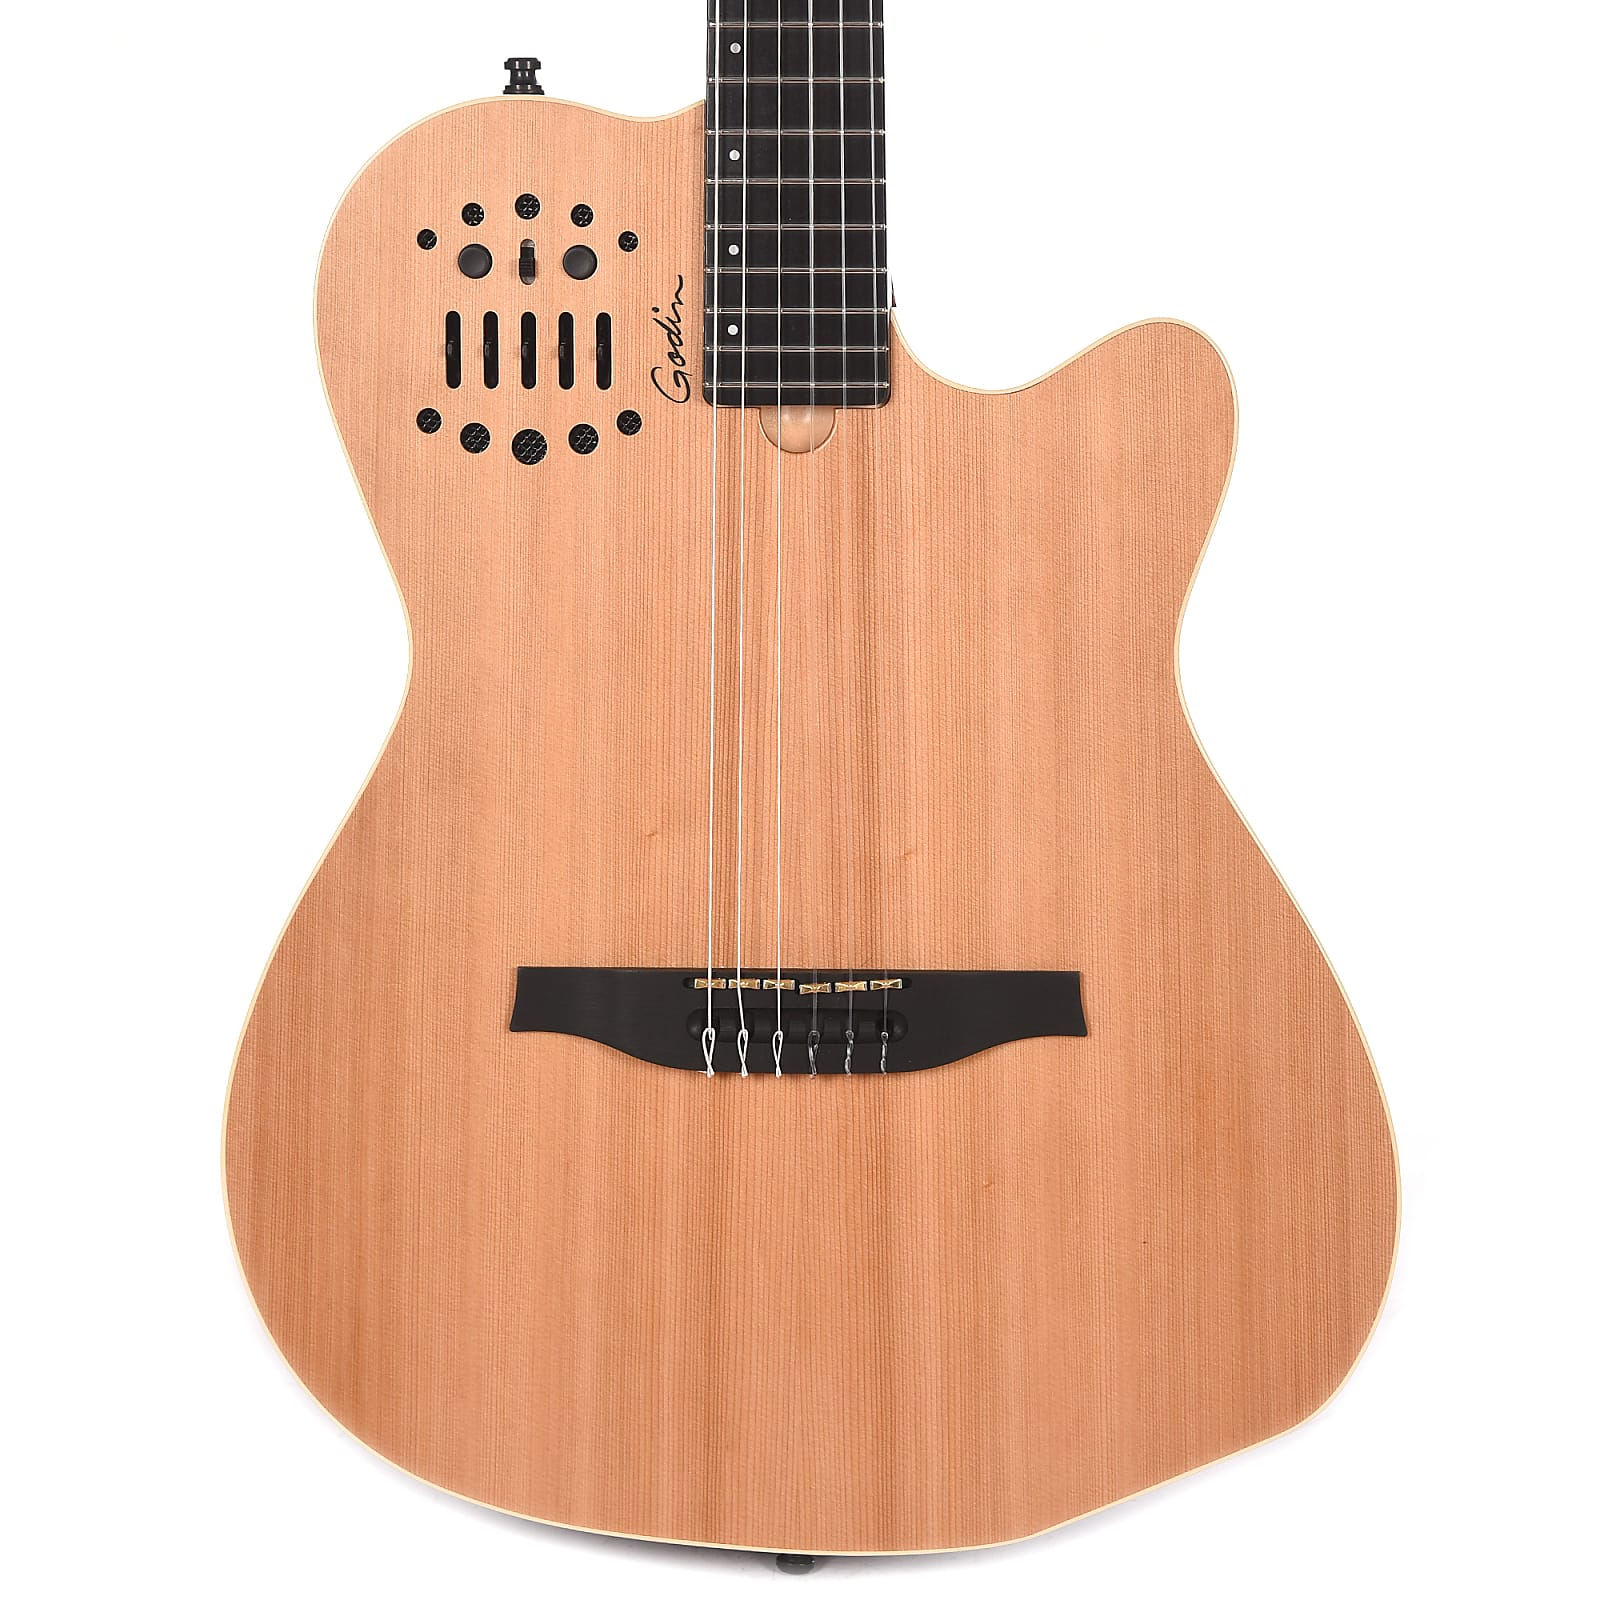 godin multiac acs slim nylon string electro acoustic natural w synth access. Black Bedroom Furniture Sets. Home Design Ideas